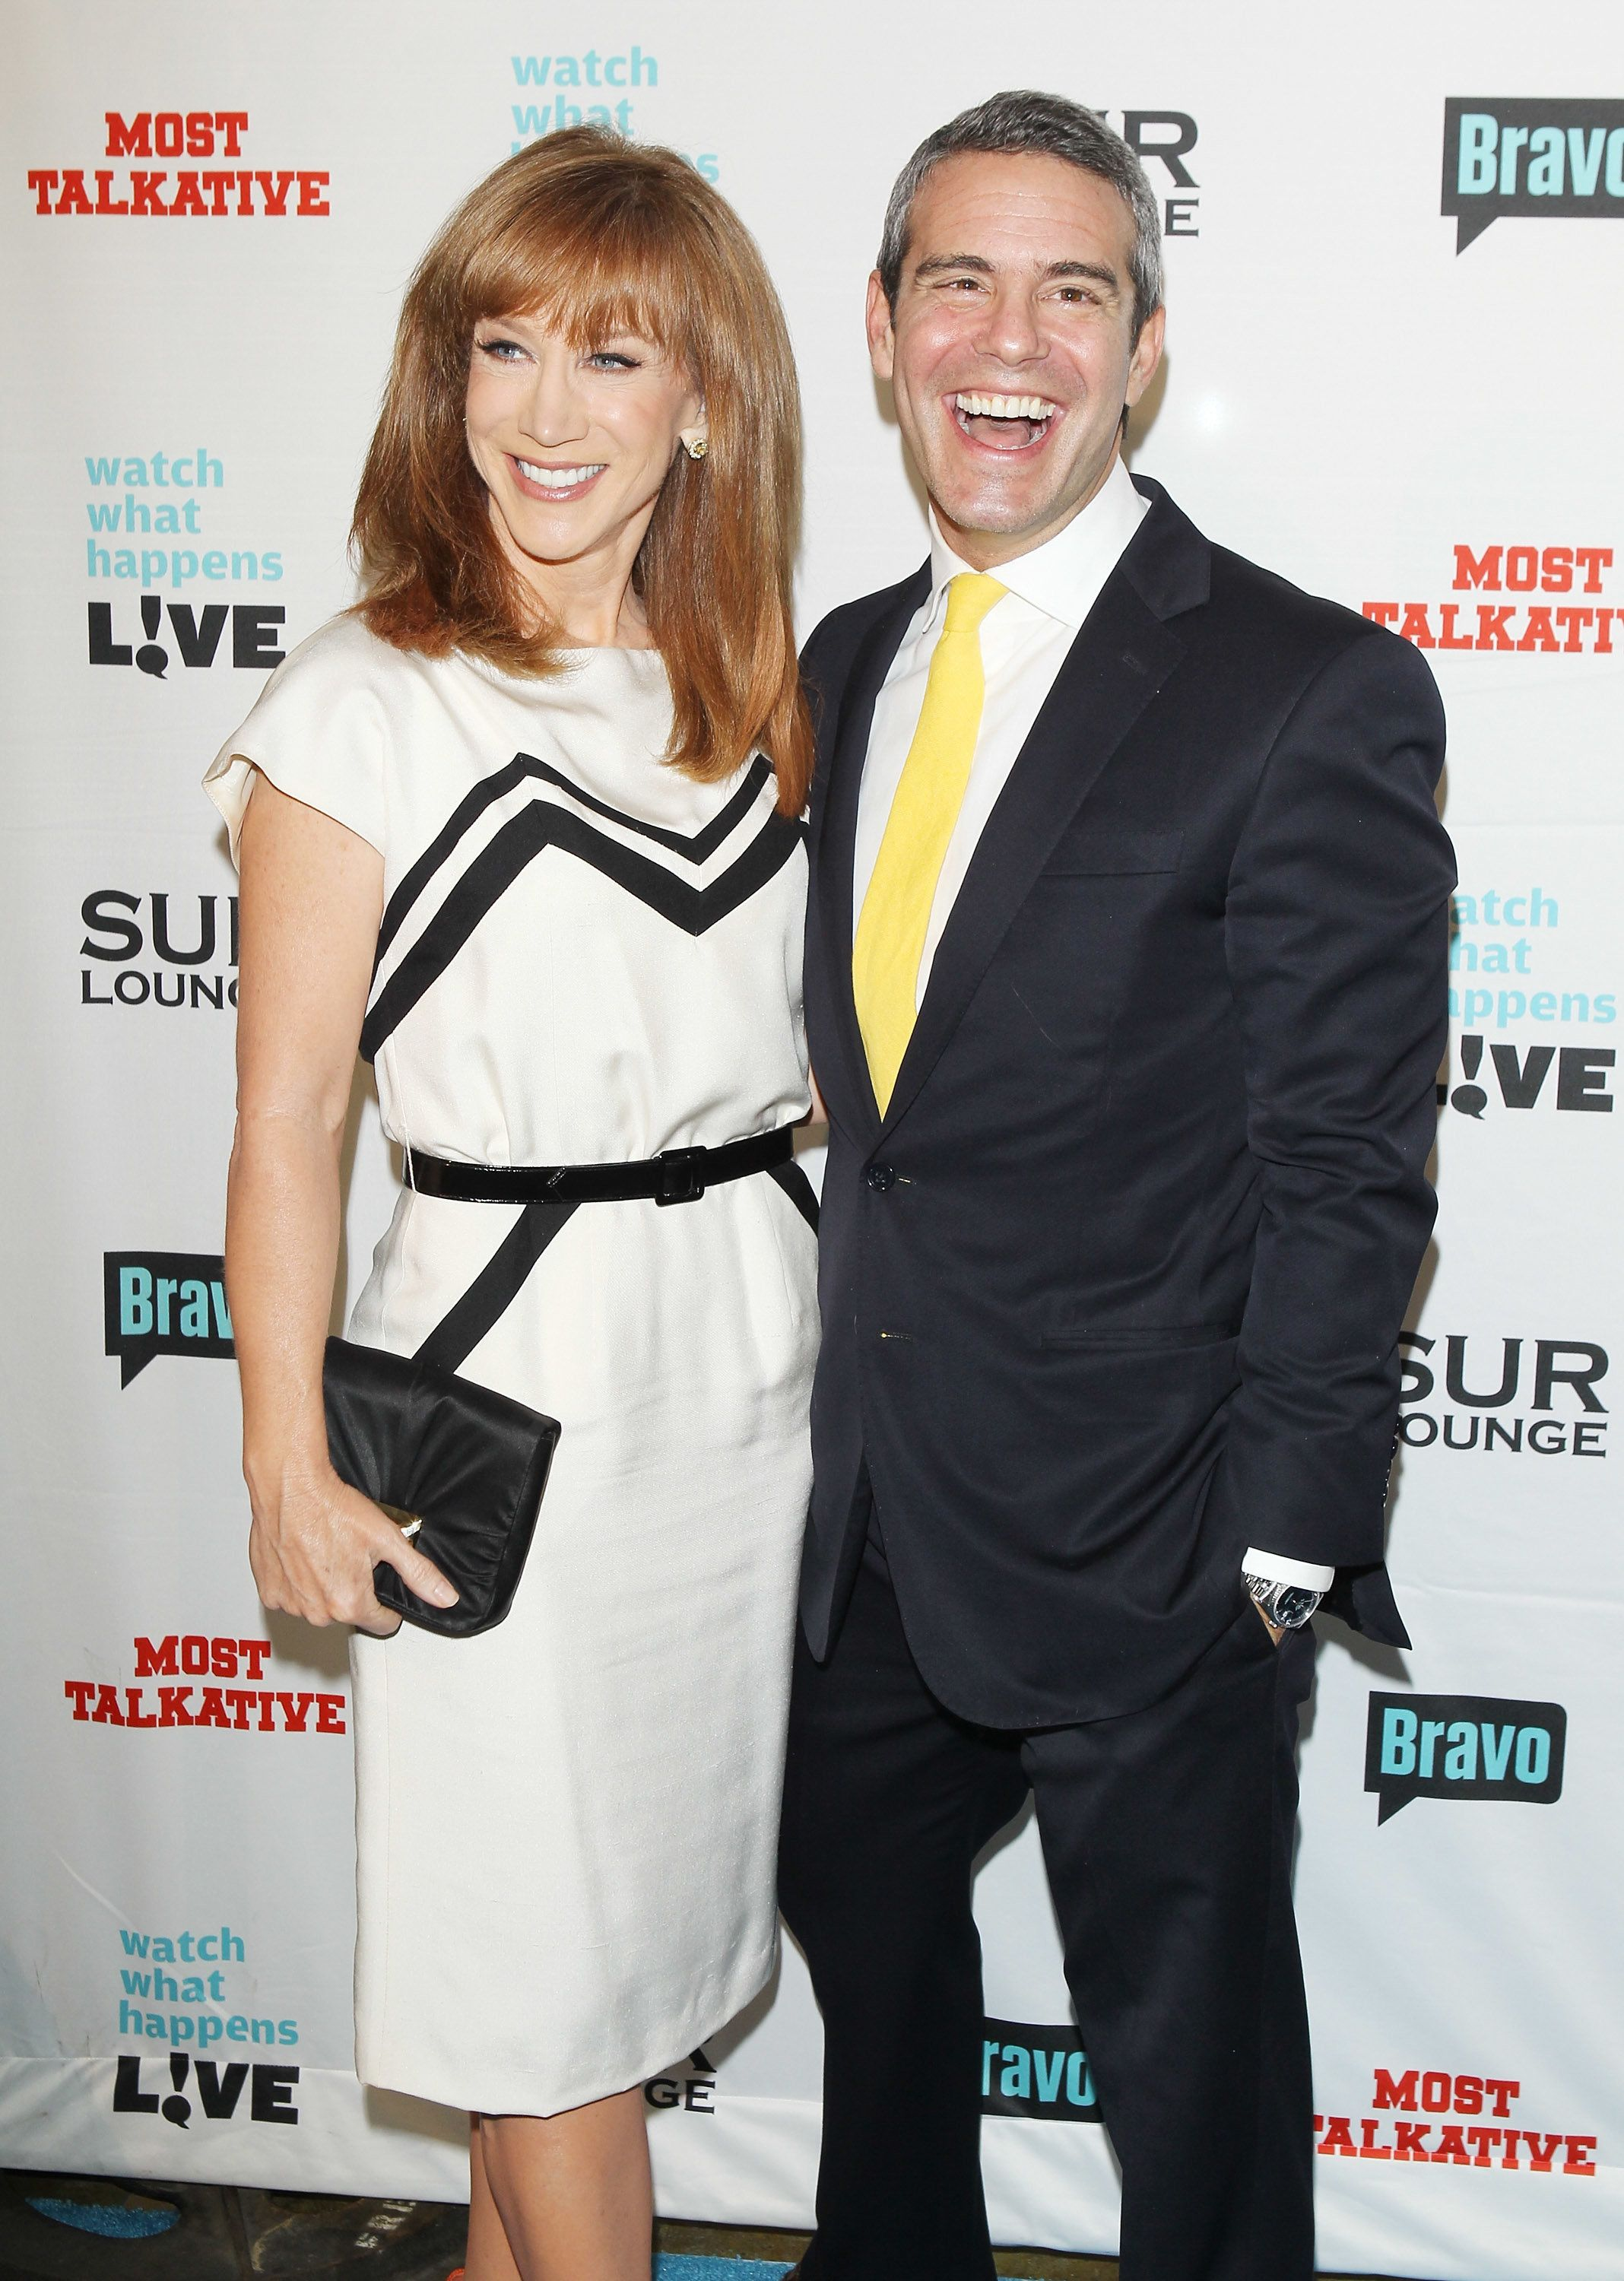 LOS ANGELES, CA - MAY 14:  Kathy Griffin and Andy Cohen arrive at Bravo's Andy Cohen's book release party for 'Most Talkative: Stories From The Front Lines Of Pop Culture' held at SUR Lounge on May 14, 2012 in Los Angeles, California.  (Photo by Michael Tran/FilmMagic)